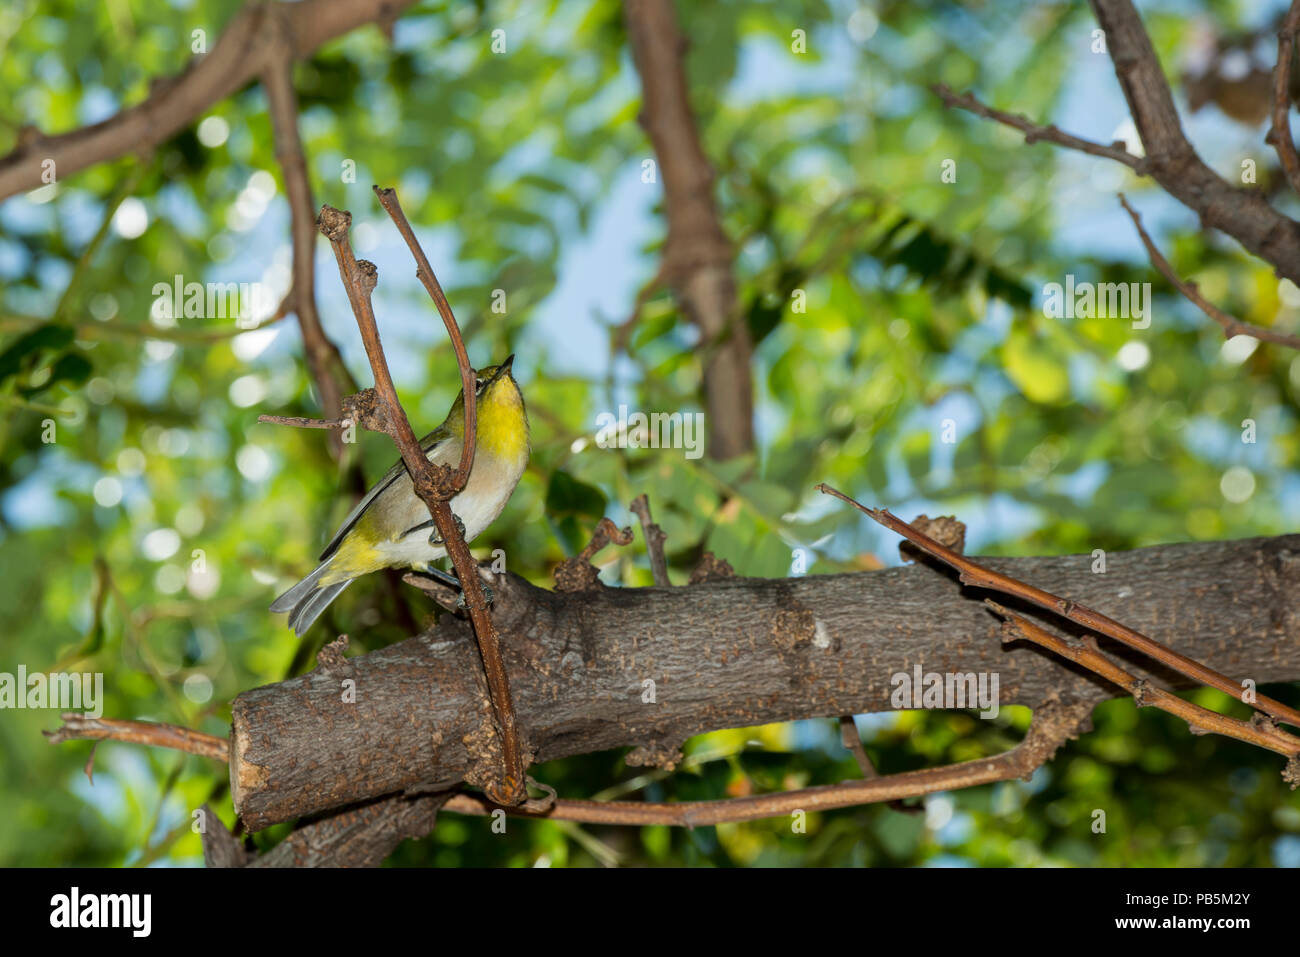 Maui, Hawaii. Japanese white-eye, Zosterops japonicus perched in a tree. - Stock Image